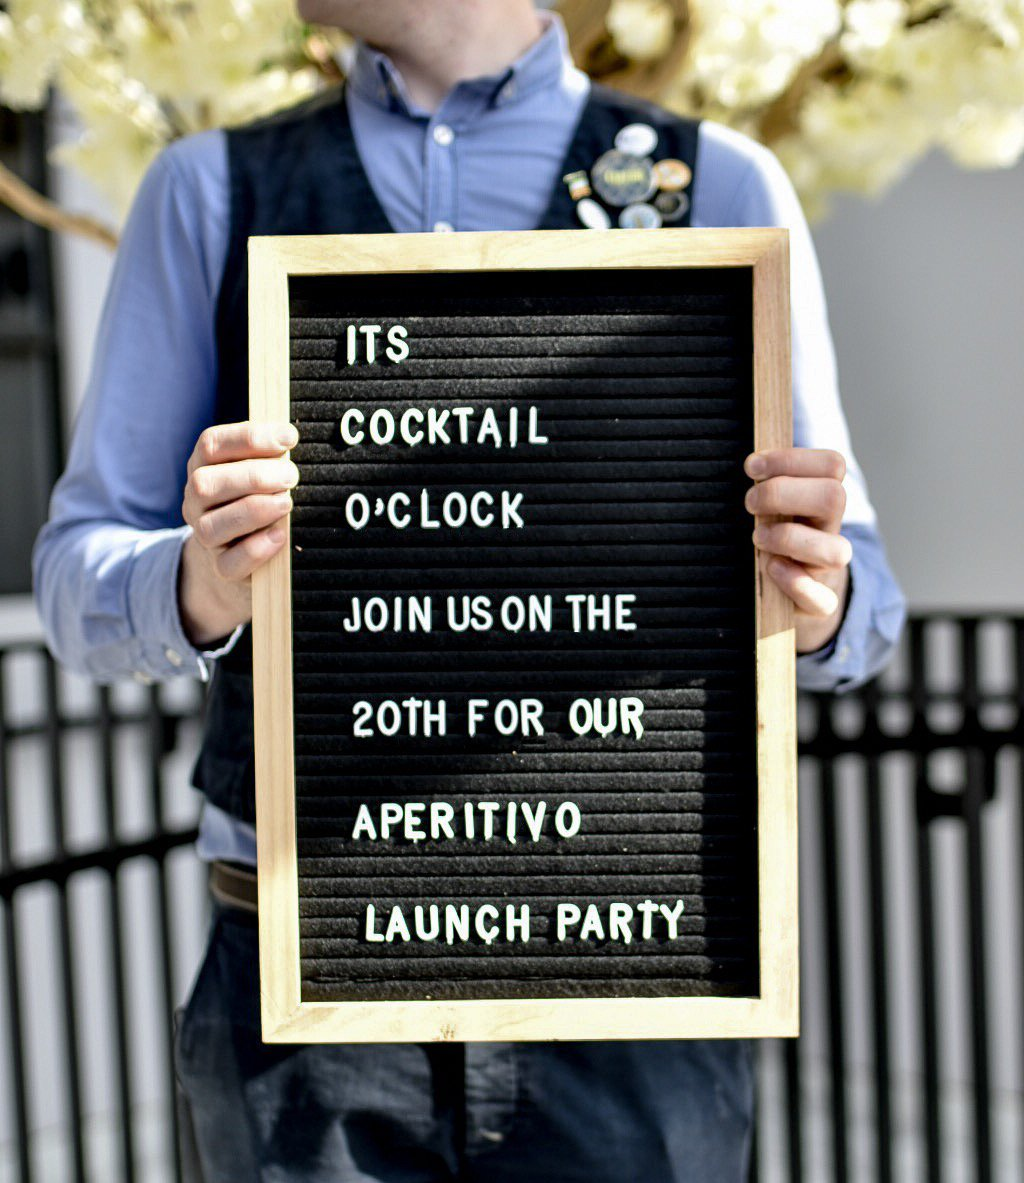 LAUNCH NIGHT 2 for £10 on loads of cocktails including, Aperol Spritz, Classic G&T's, Traditional Negronis, 2 for £6 on selected beers plus, 3 tapas plates for £8! Enjoy live sets by DJ Oscar all evening long and relax with an Aperitif after work! #ManchesterFood <br>http://pic.twitter.com/nkhhWxw16B